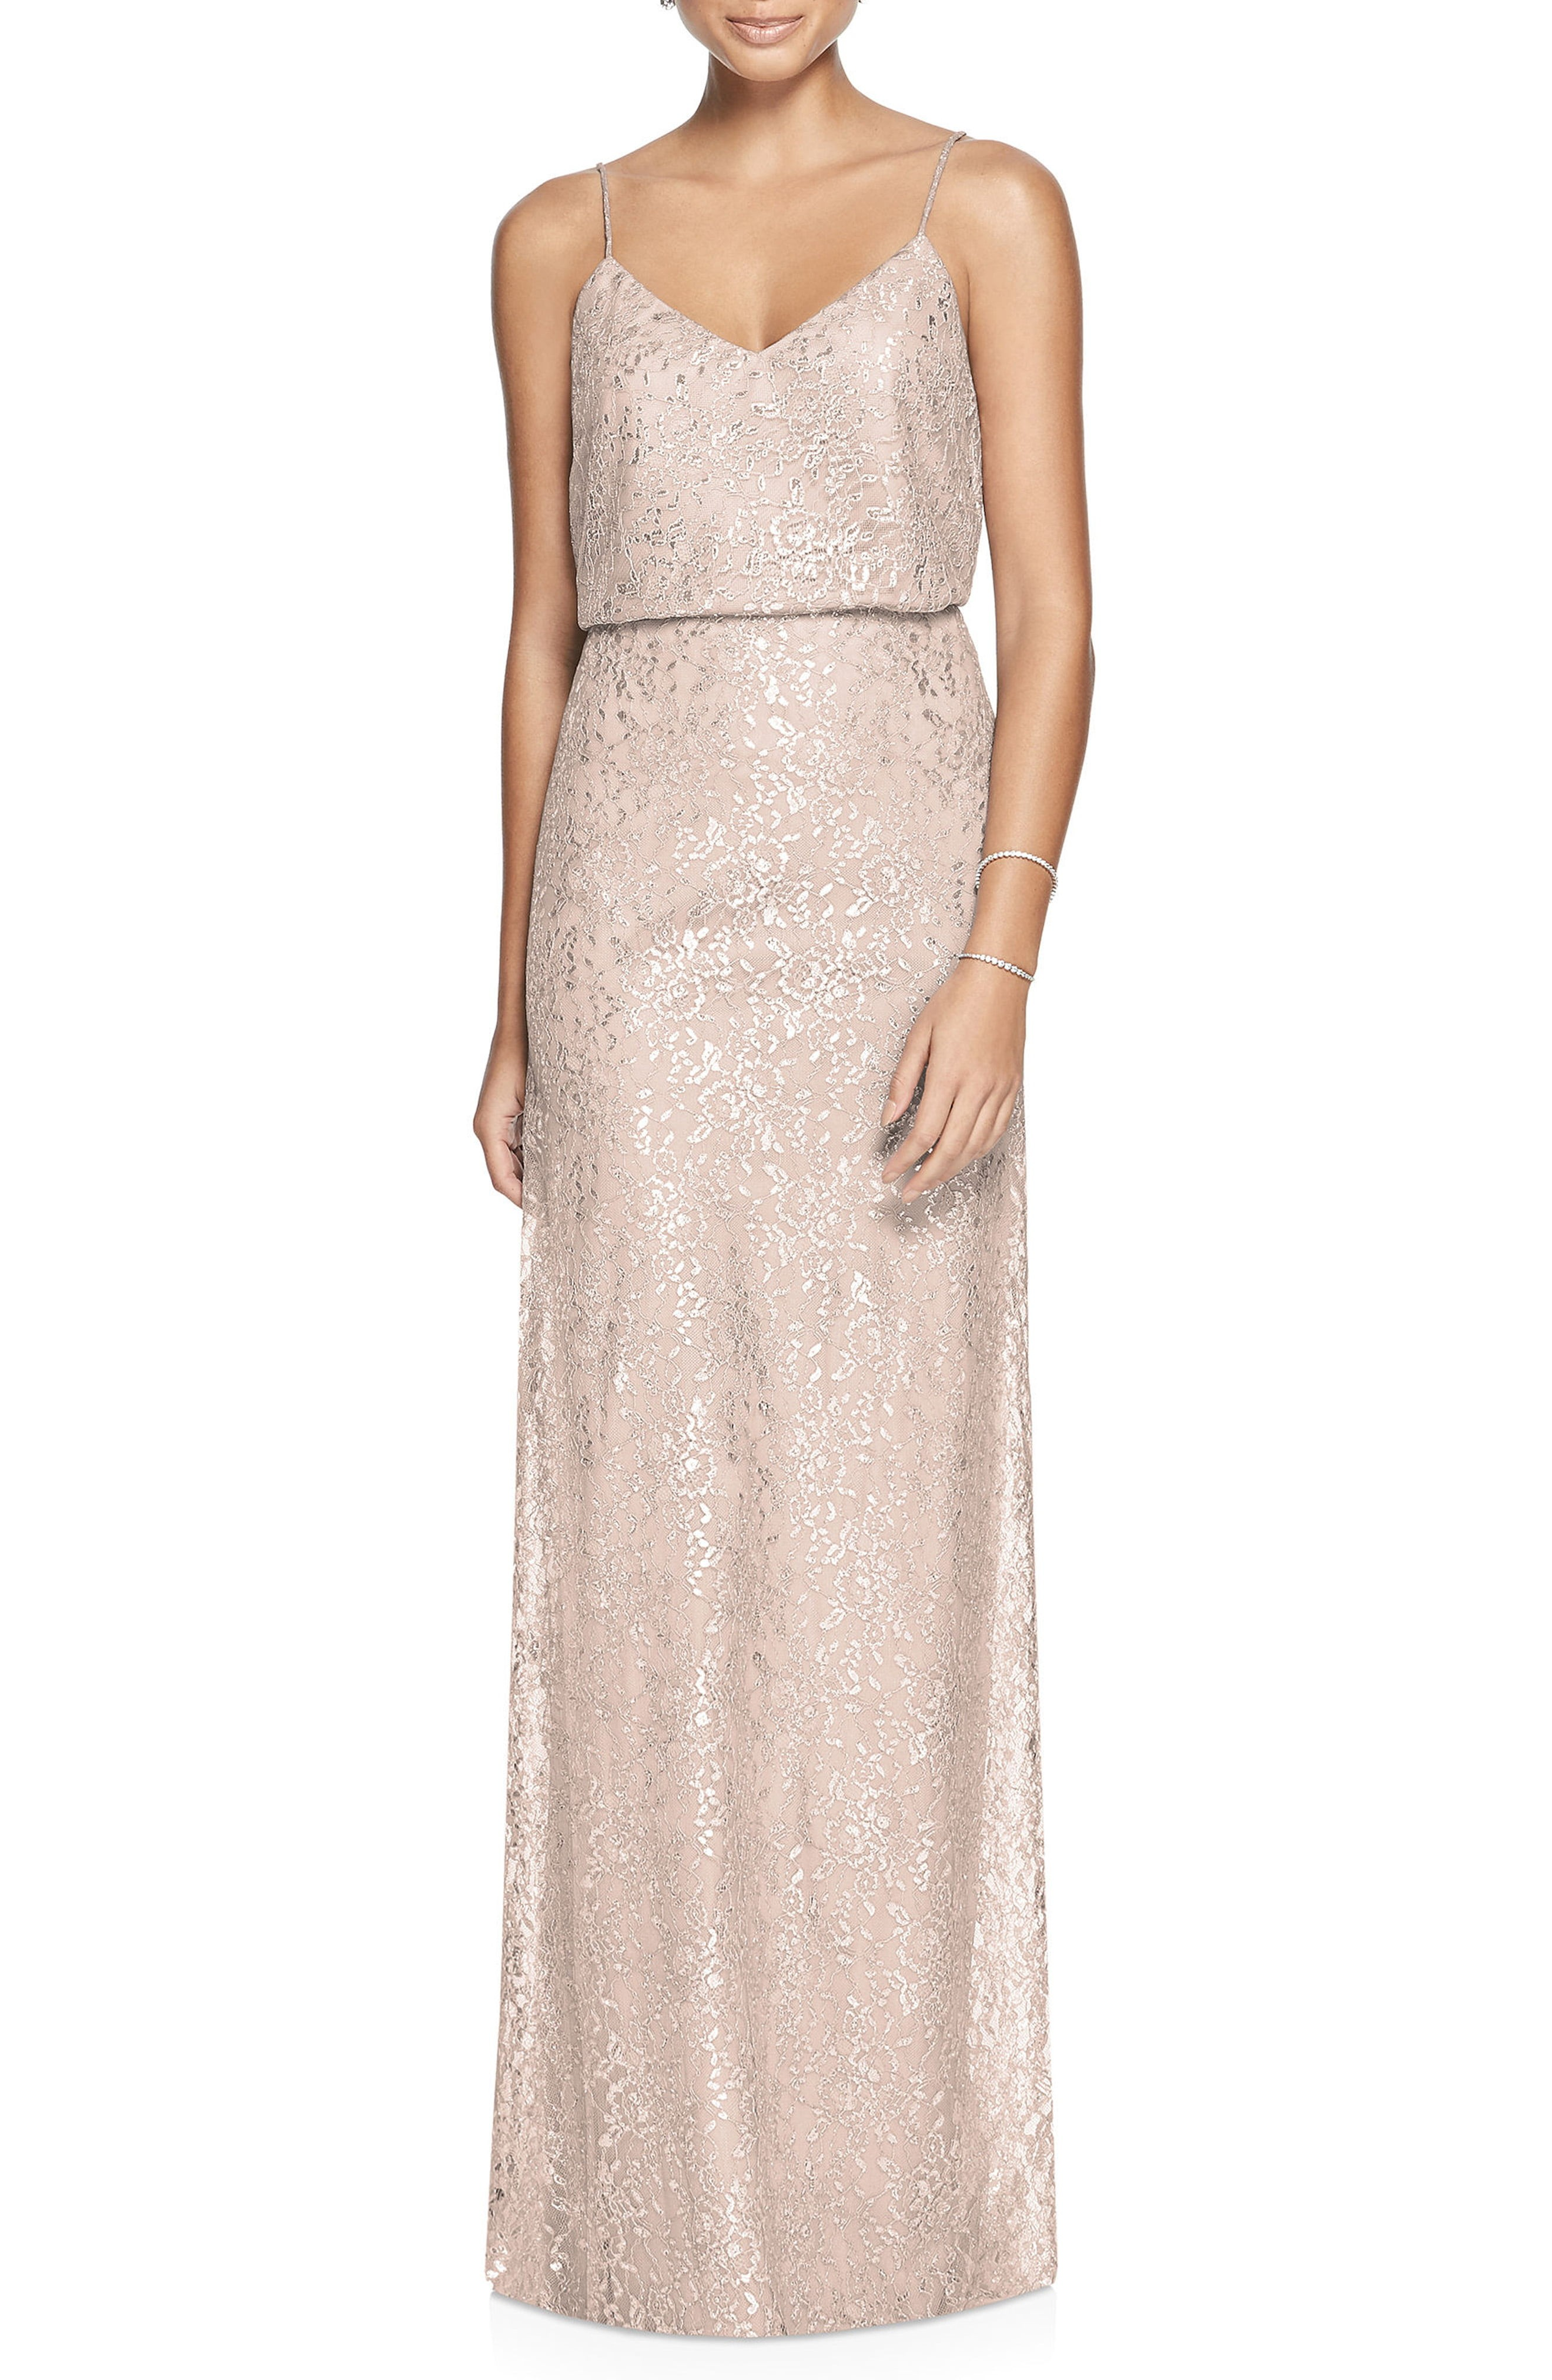 Beaded metallic and sequined bridesmaid dresses nordstrom ombrellifo Choice Image